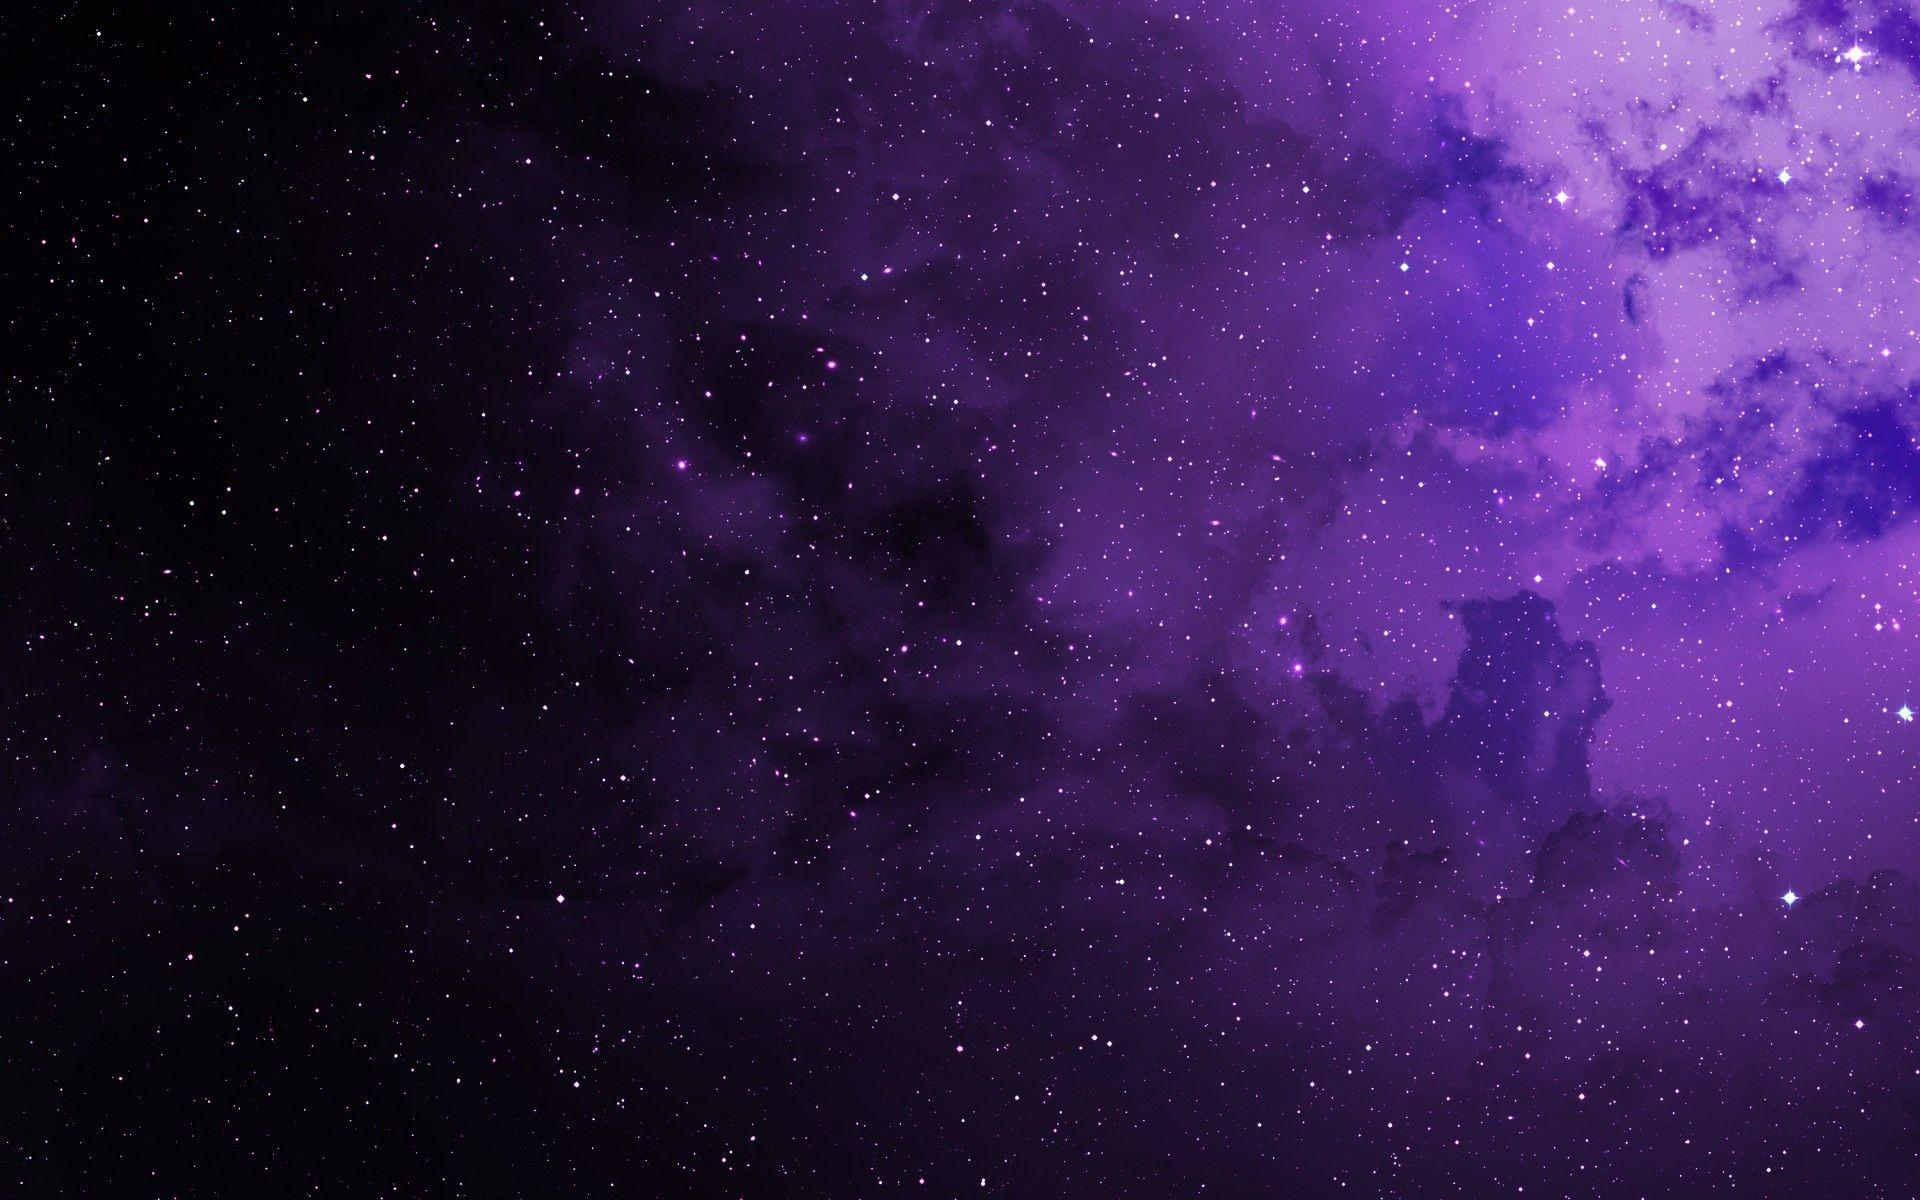 Wallpaper Stars, Purple, Cosmos, HD, Space, #7172